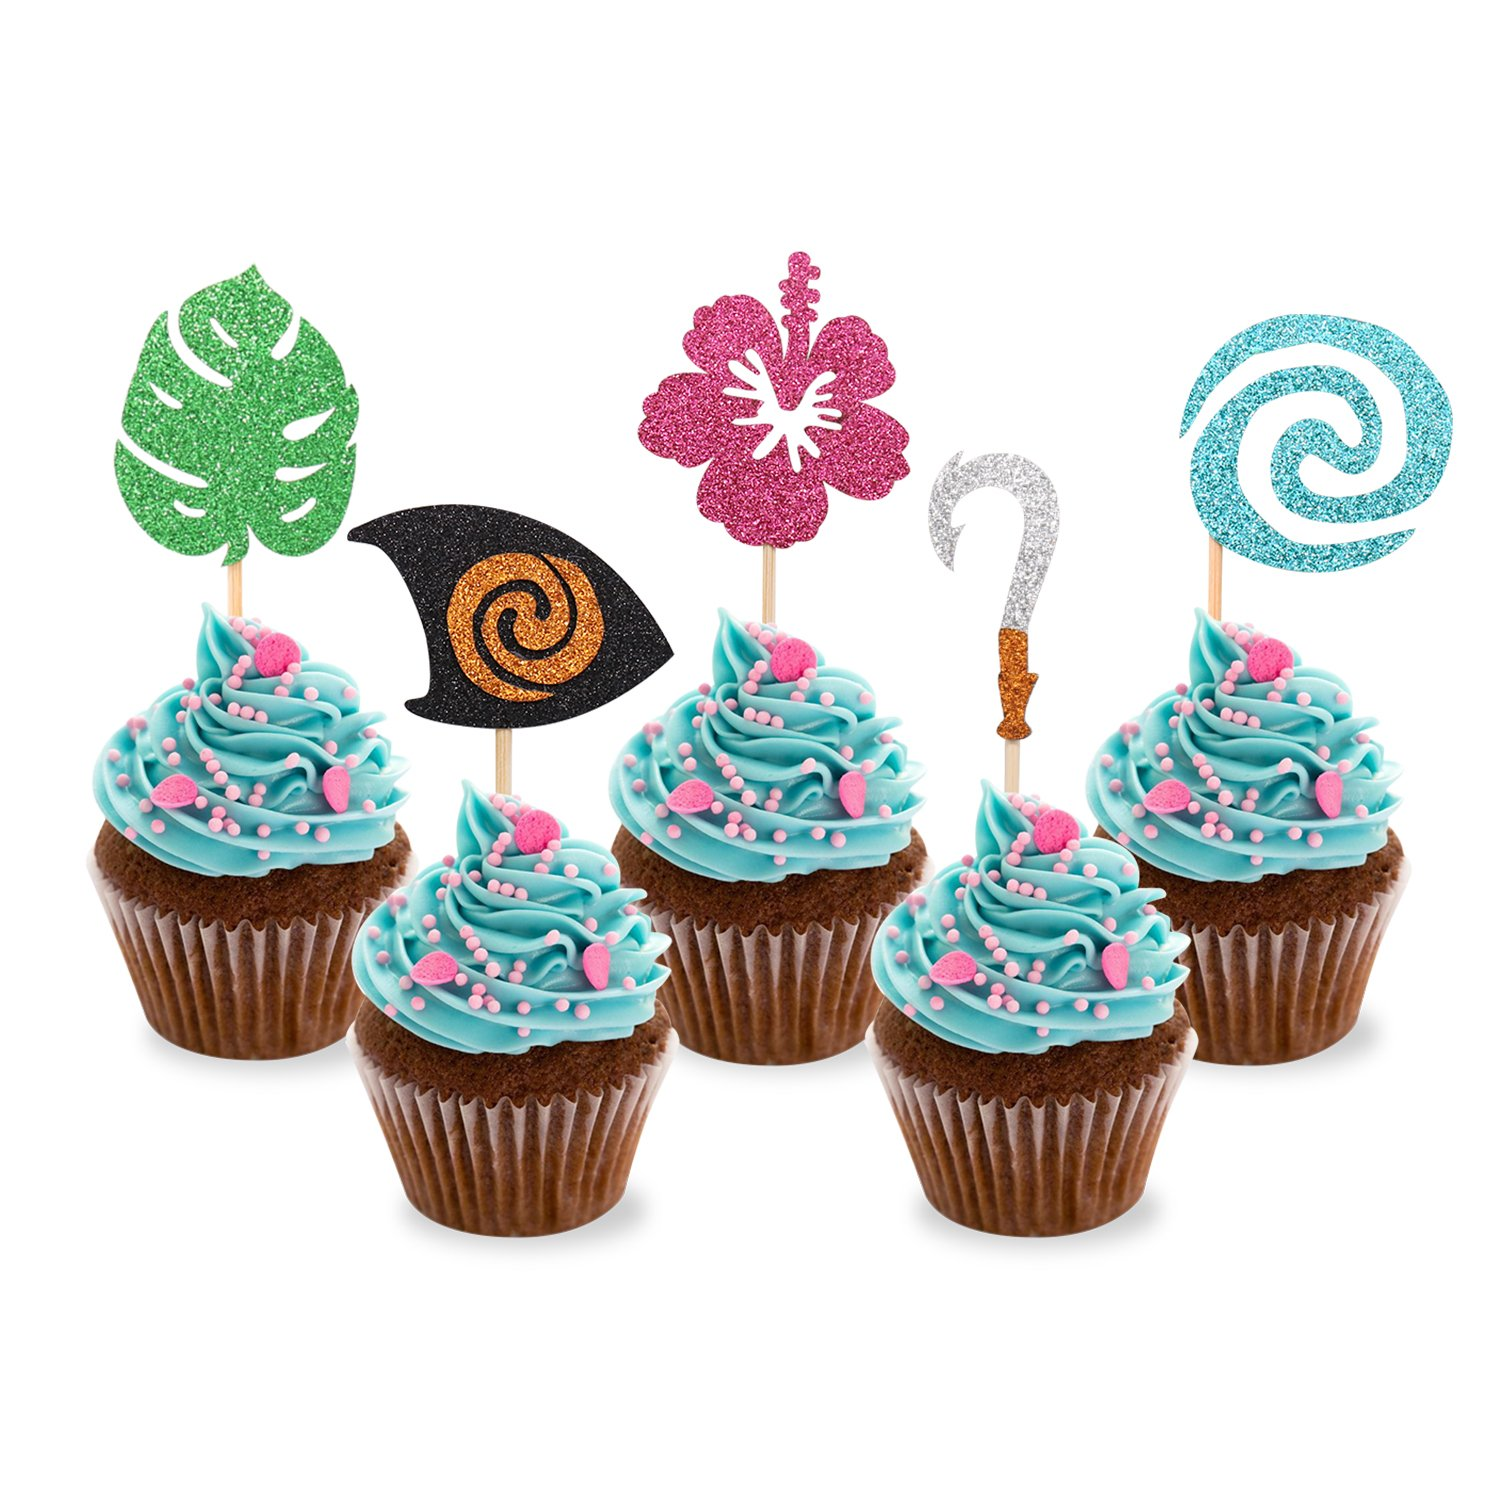 Moana Inspired Cupcake Toppers Birthday Party Decoration Boat Sail Swirls Hooks Hawaiian Flower Leaves for Tropical Luau Summer Party Baby Shower Wedding 25pcs